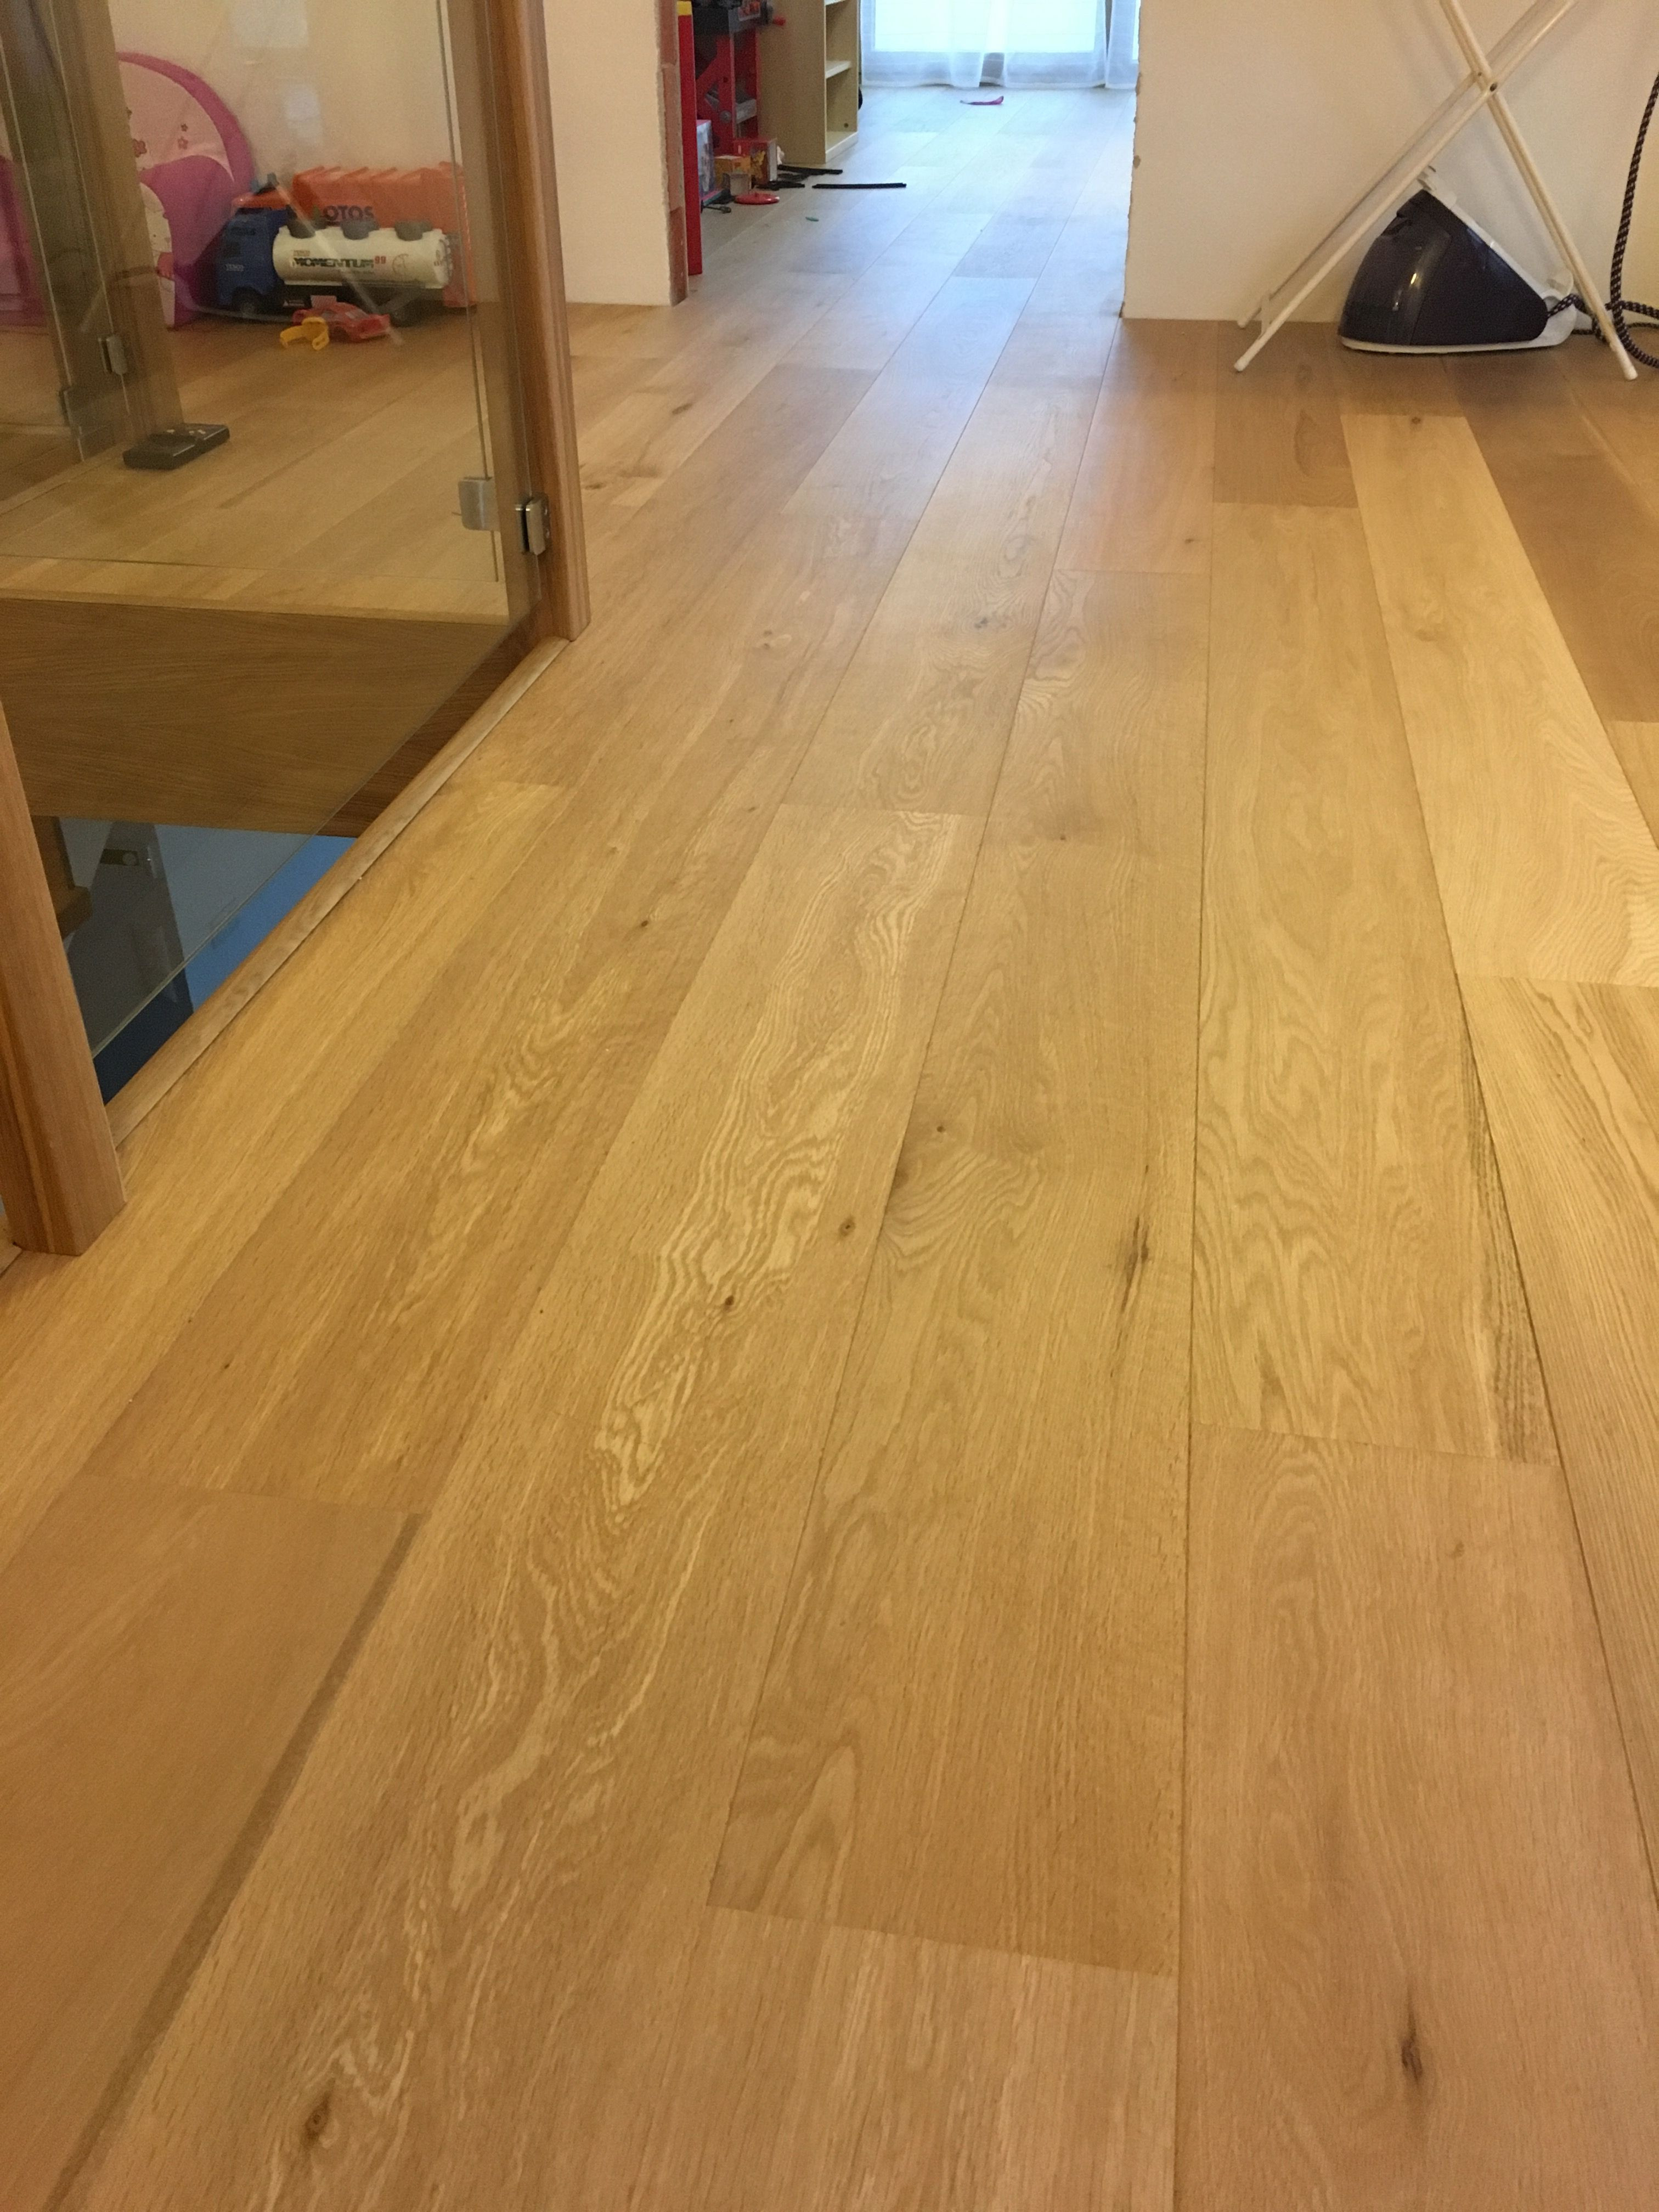 28 Popular Cost to Refinish Hardwood Floors Los Angeles 2021 free download cost to refinish hardwood floors los angeles of how to stain wood floors jacobean stain on white oak floor with how to stain wood floors naturalny dub od belgickaho vac2bdrobcu lamett